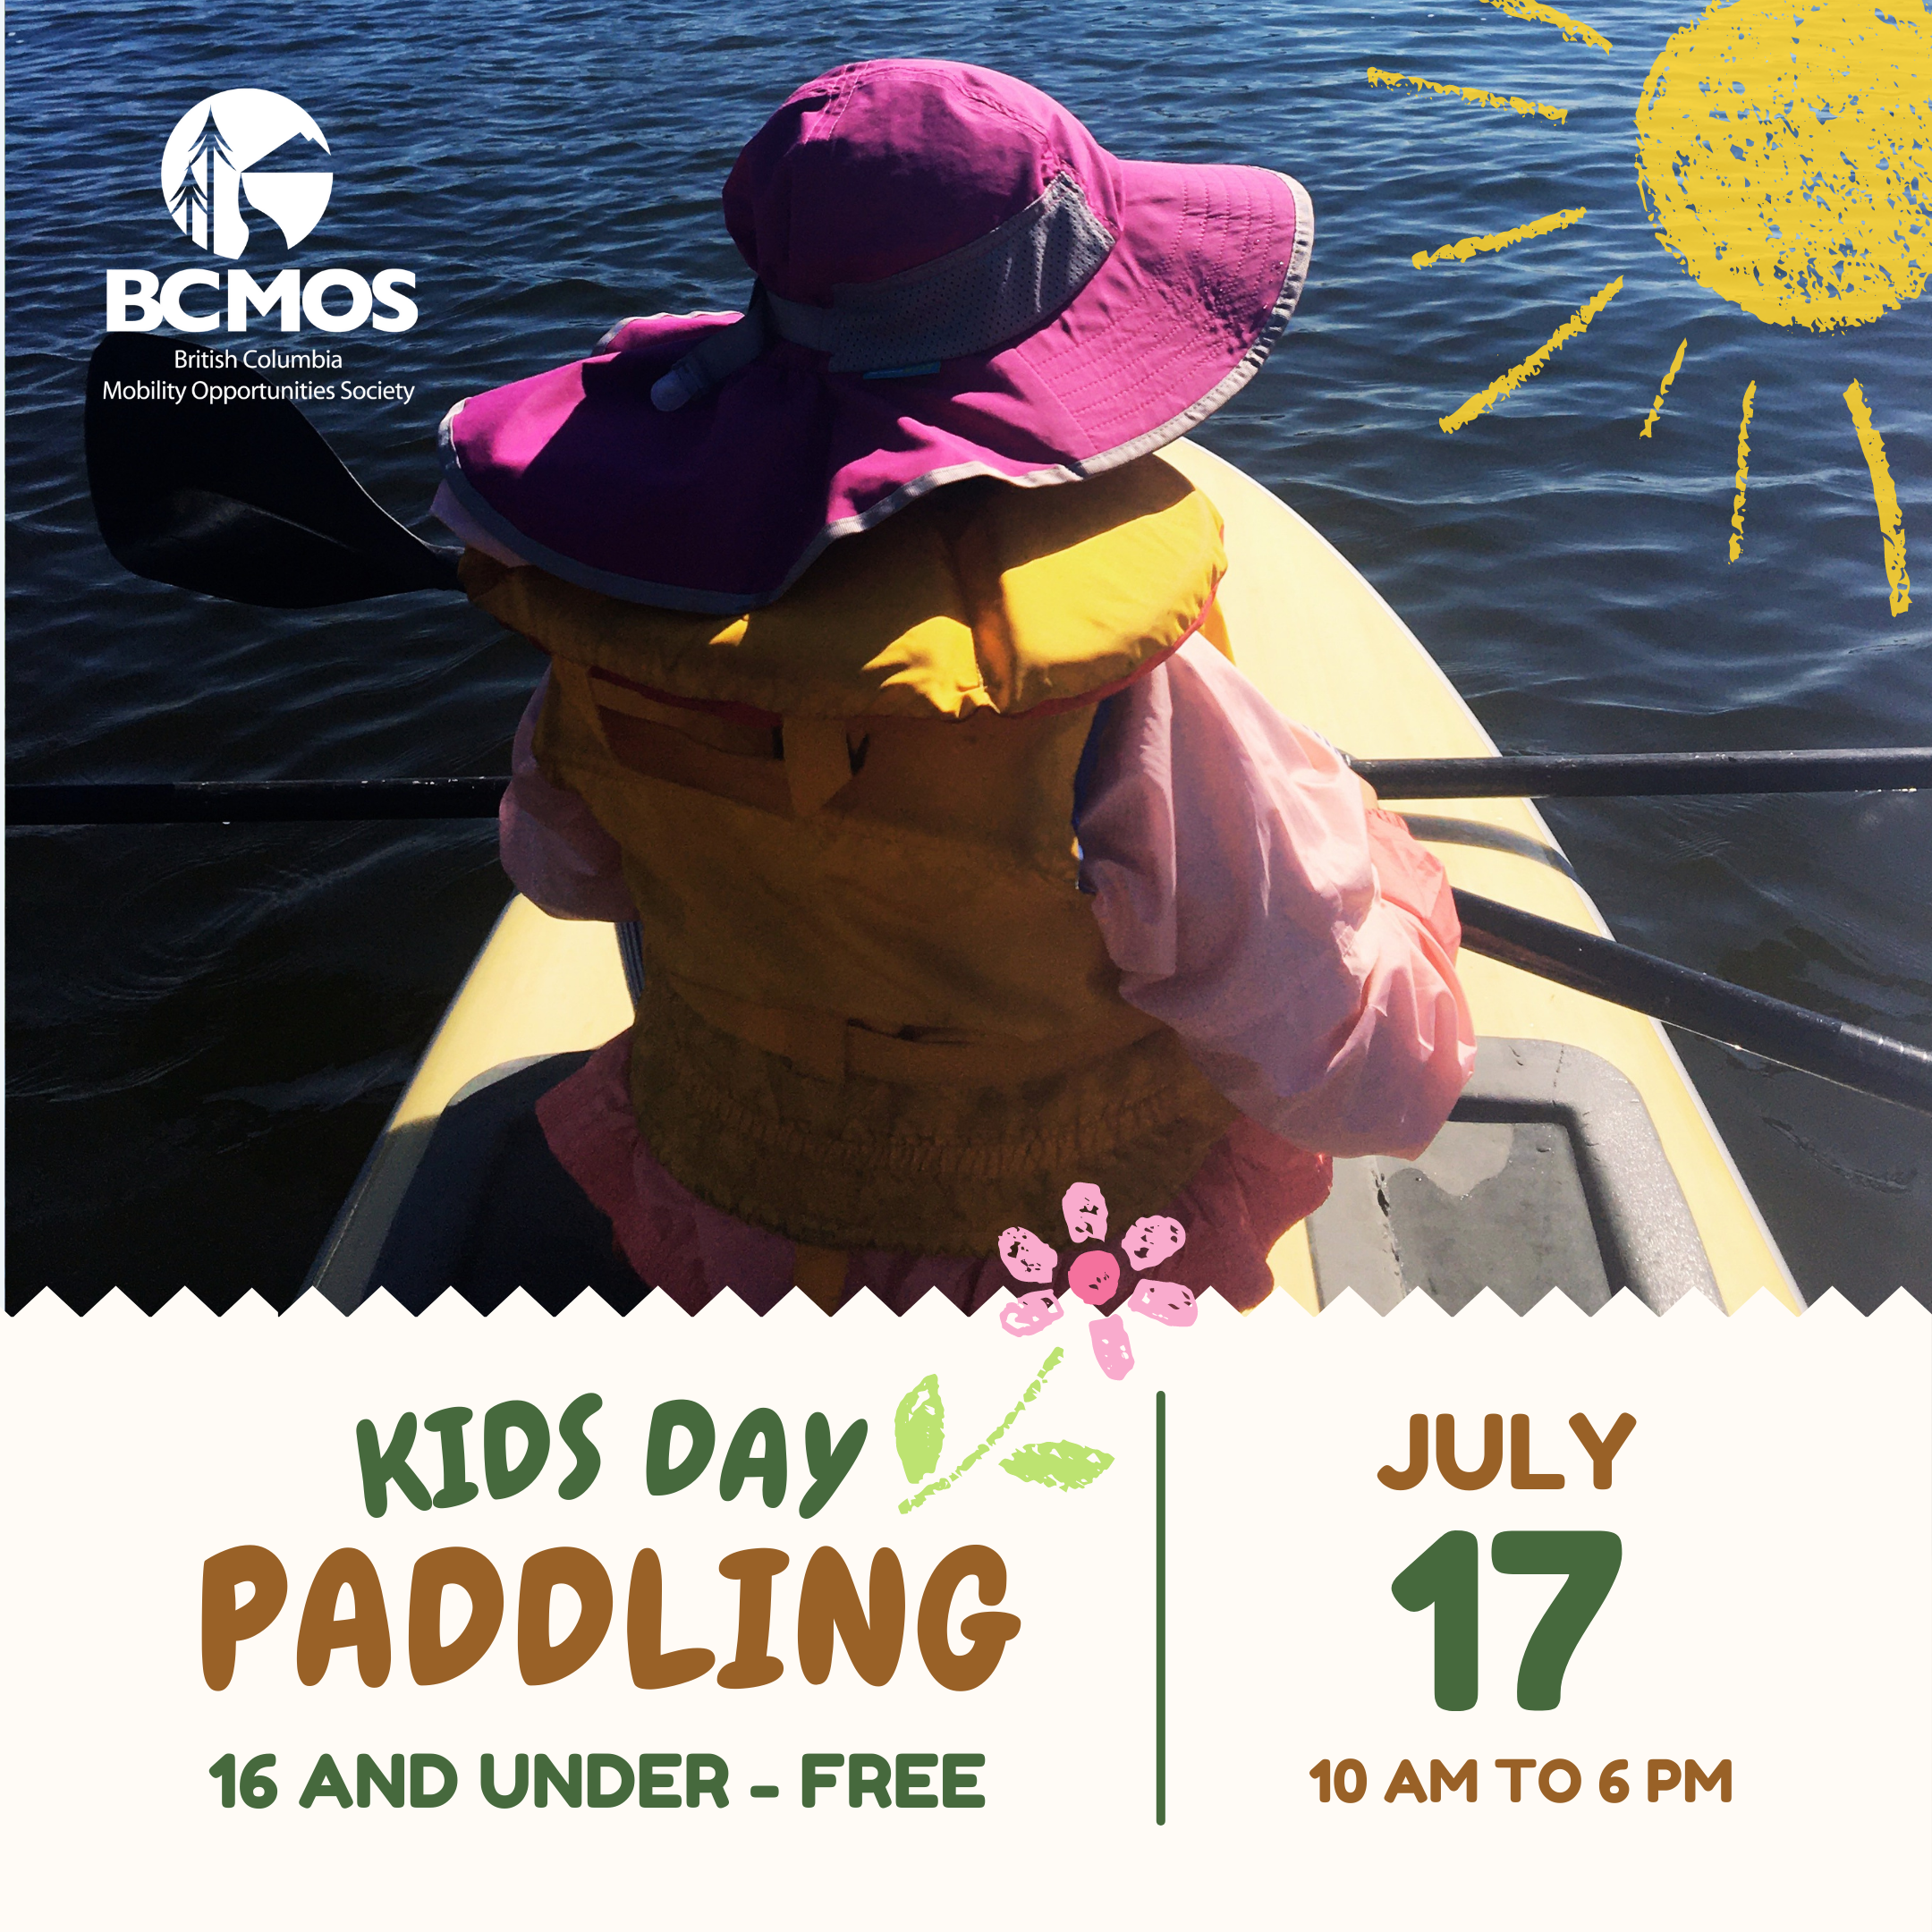 Child sitting on paddle board on the water. (Kids Day Paddling. 16 and under free. July 17, 10 am to 6 pm.)